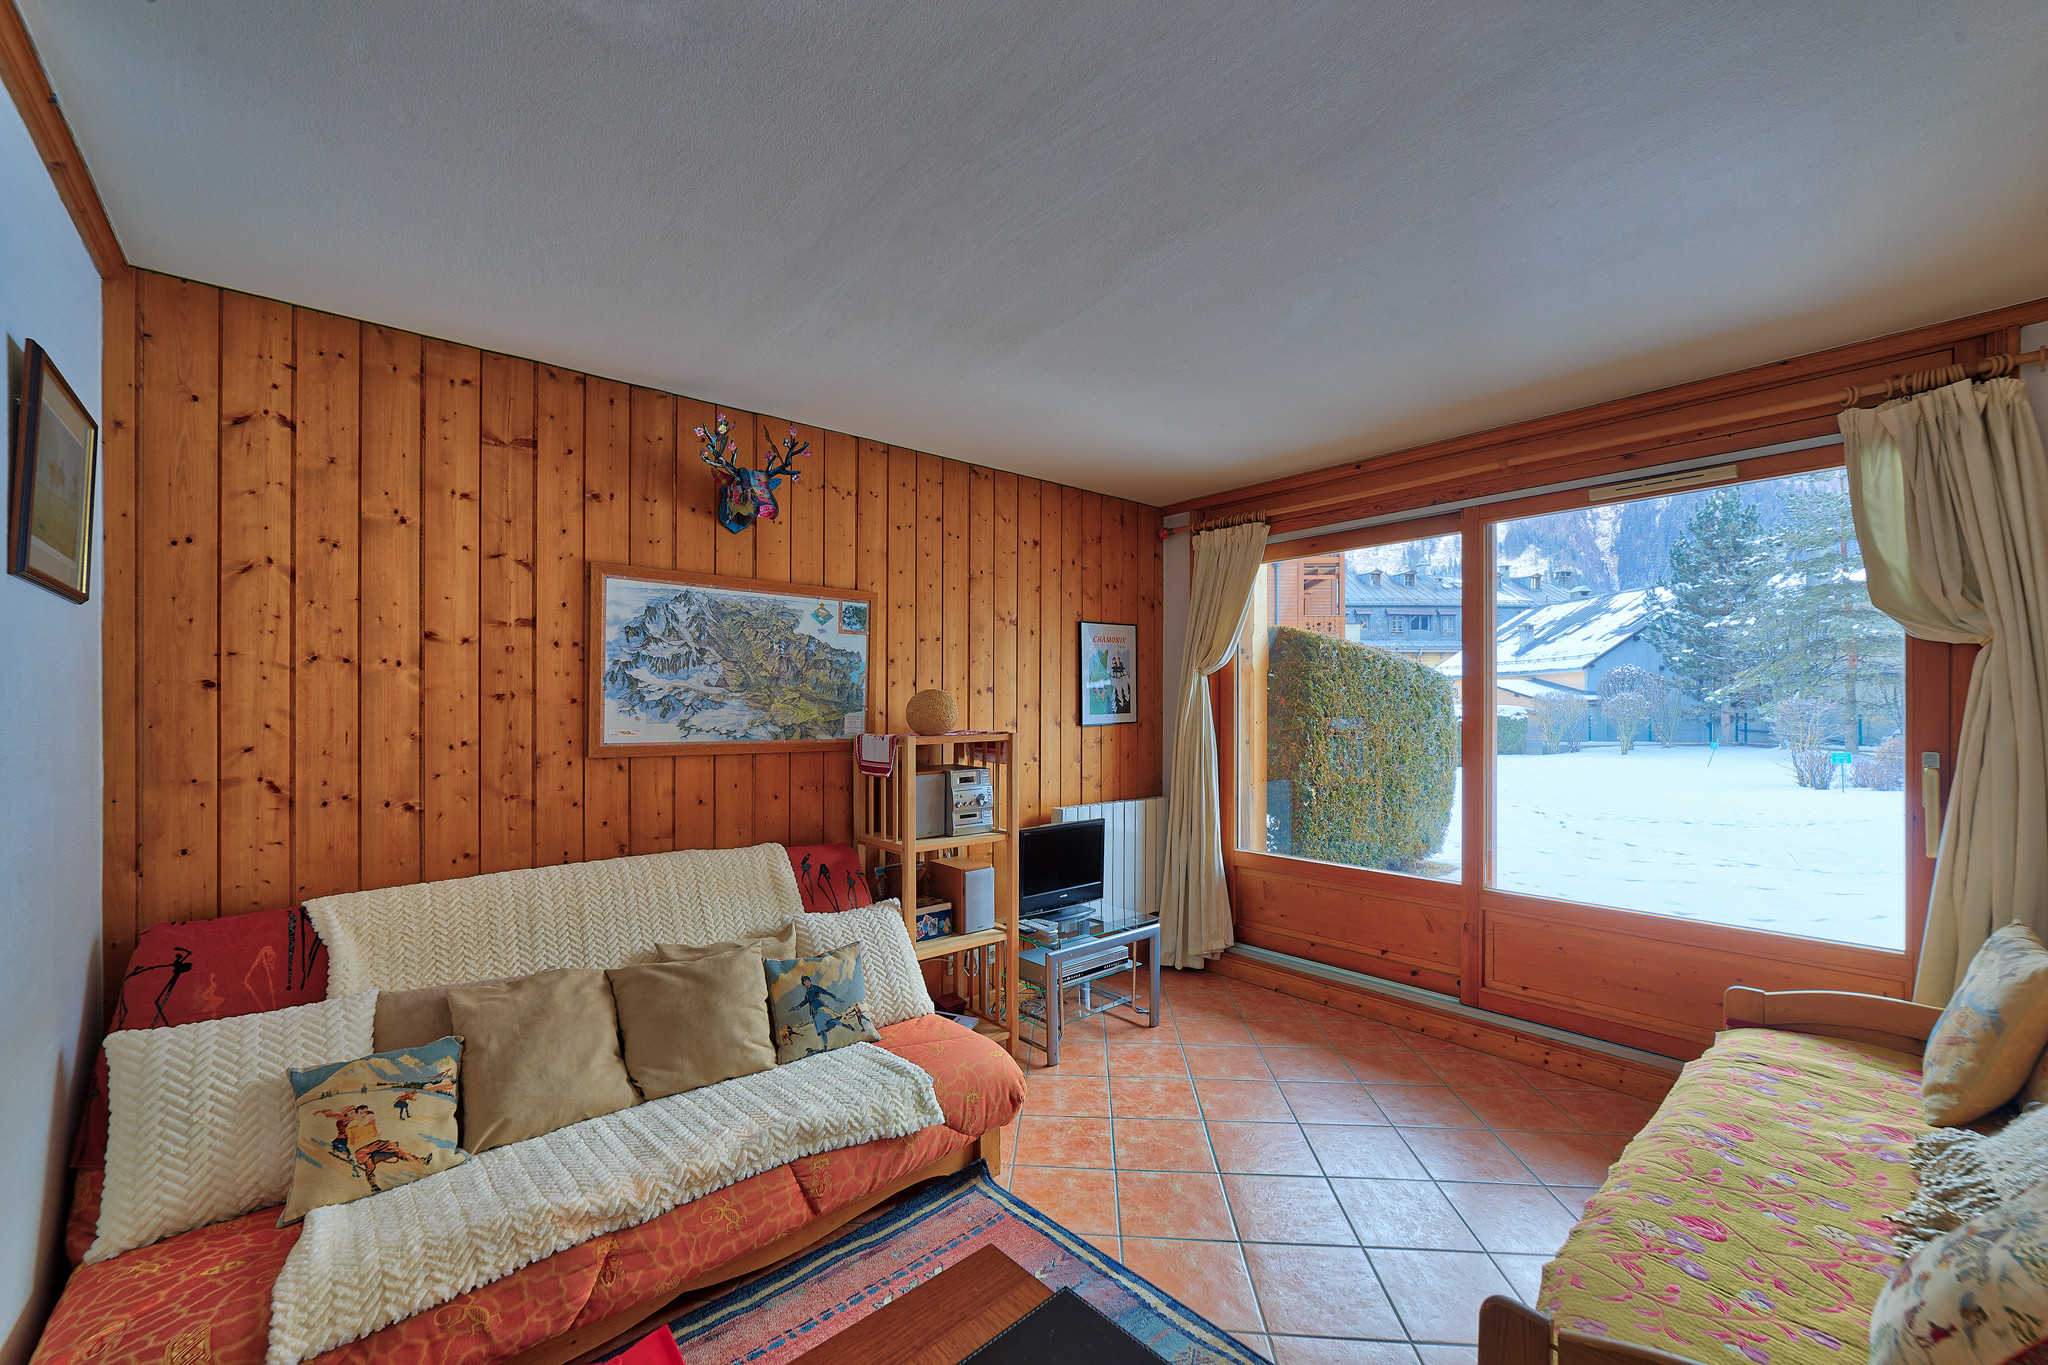 2 bedroom apartment in central chamonix